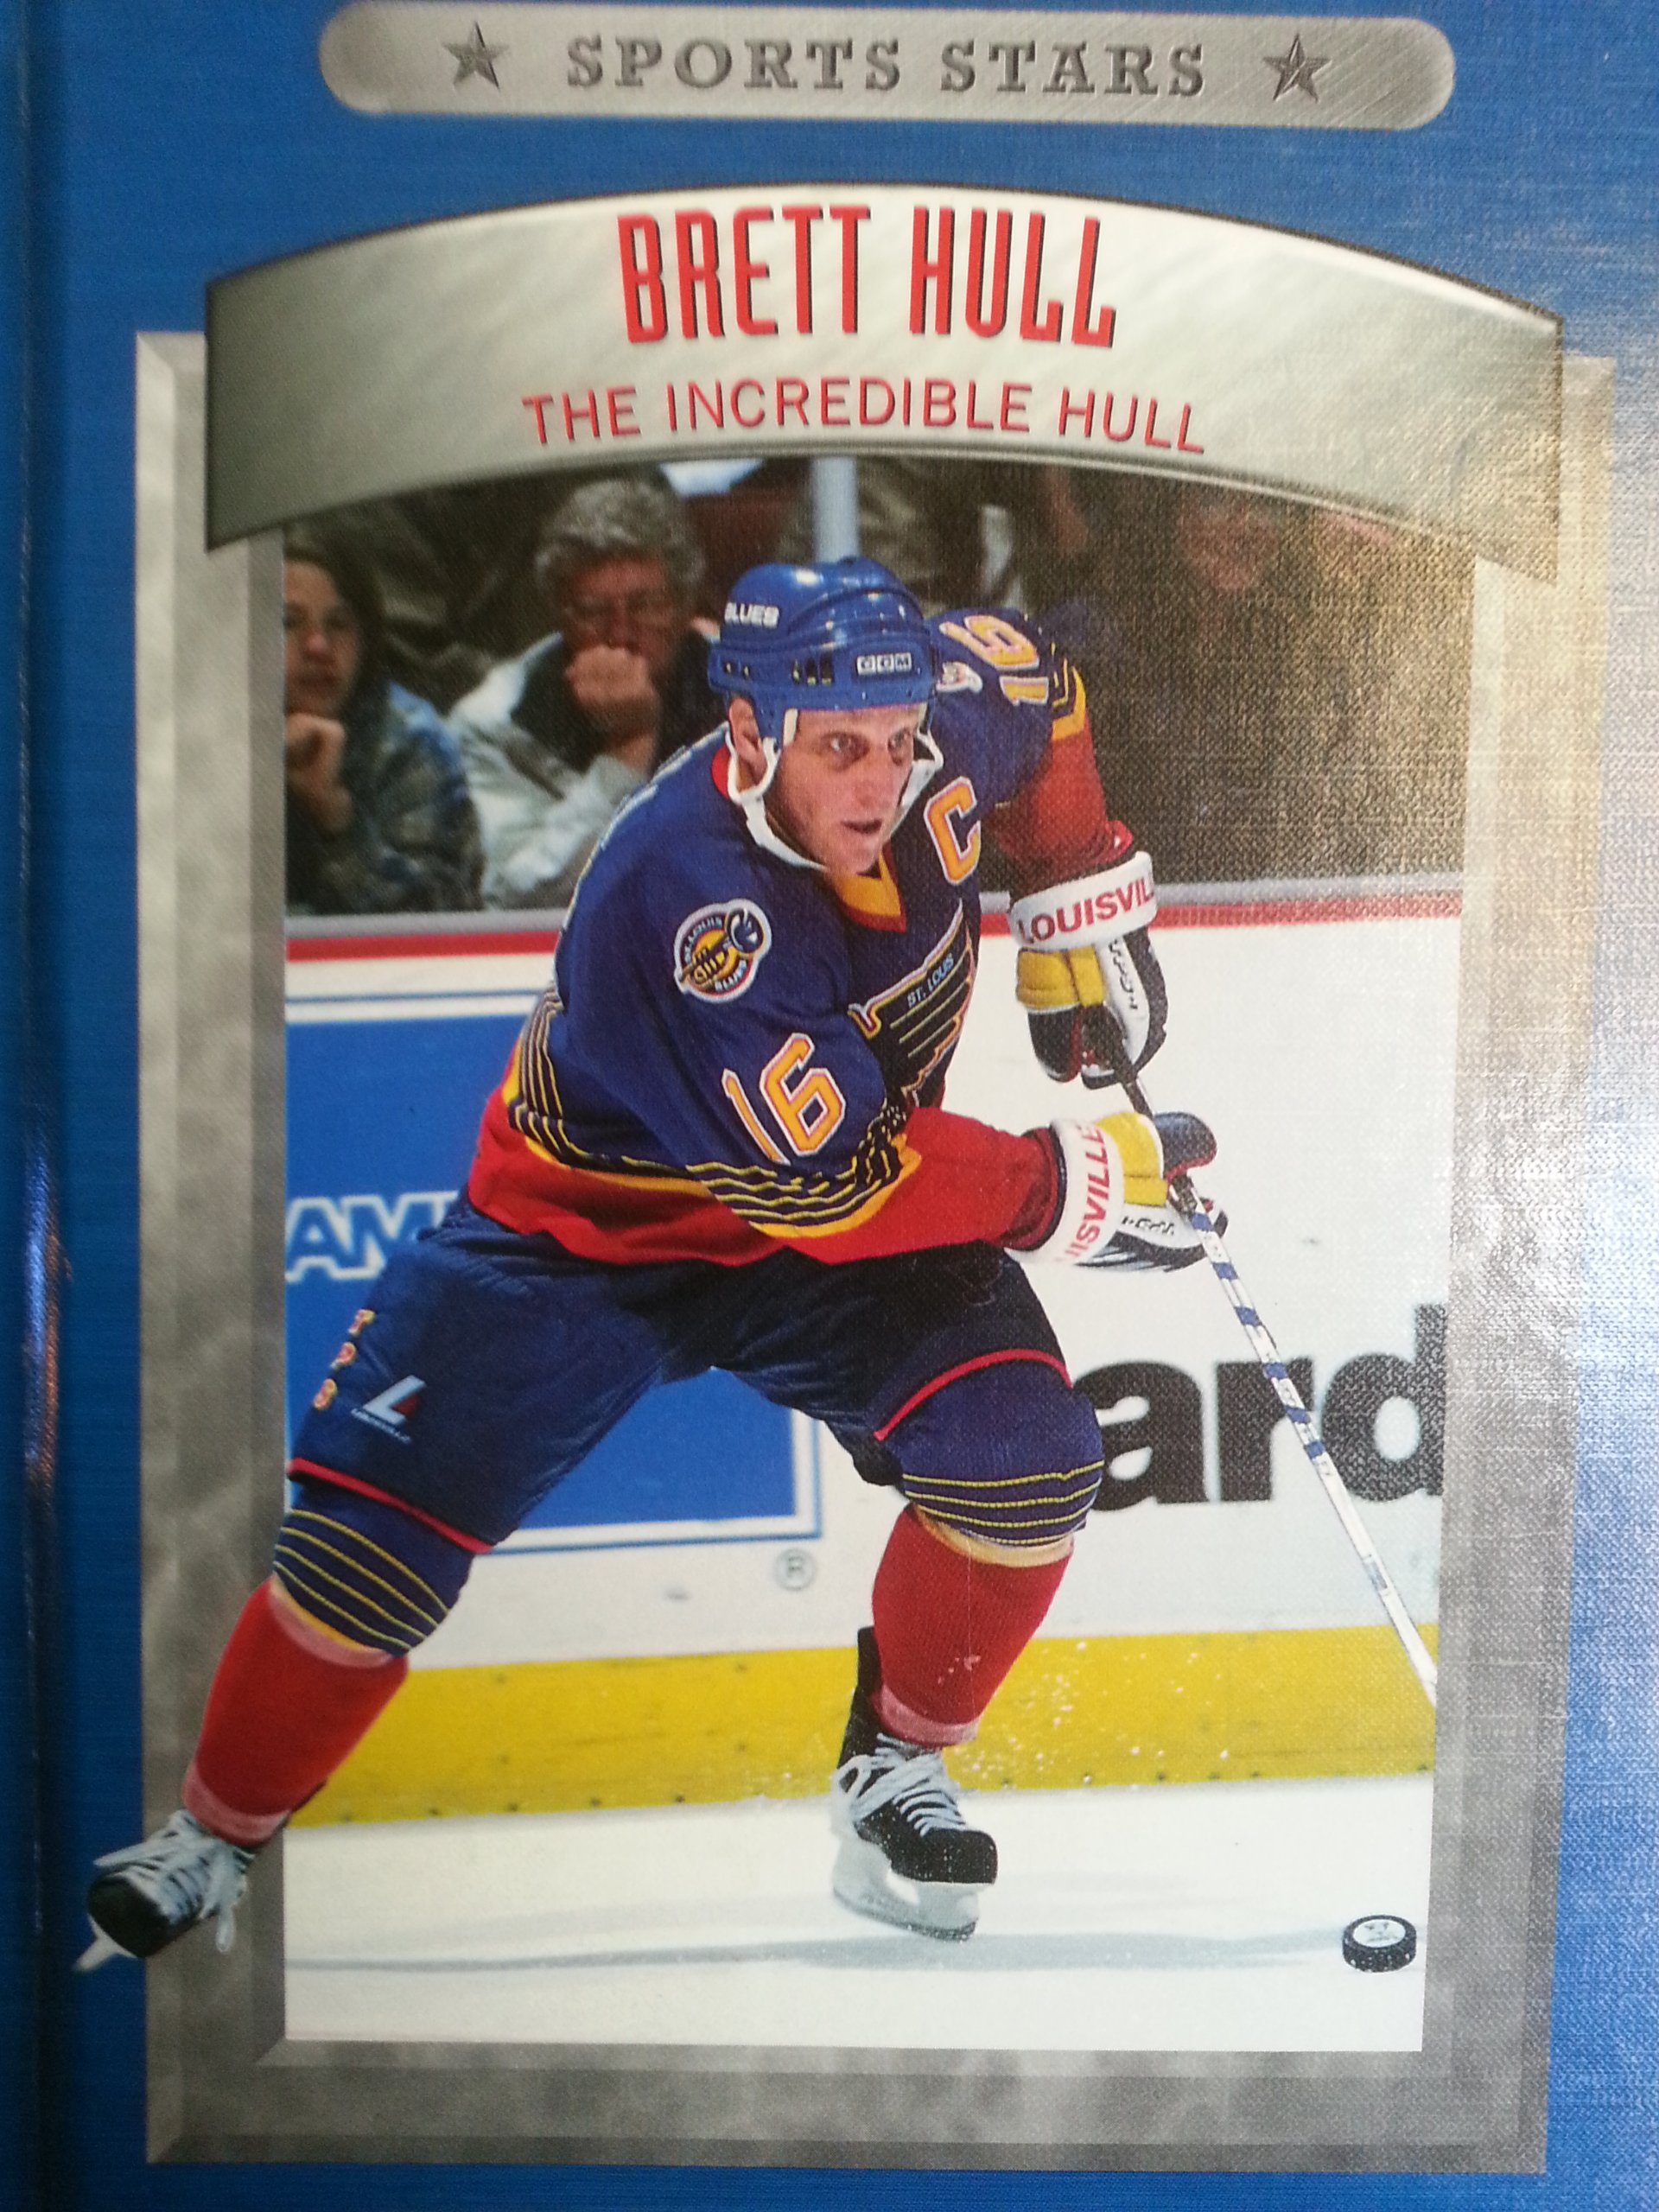 Brett Hull: the biography of the great hockey player 23